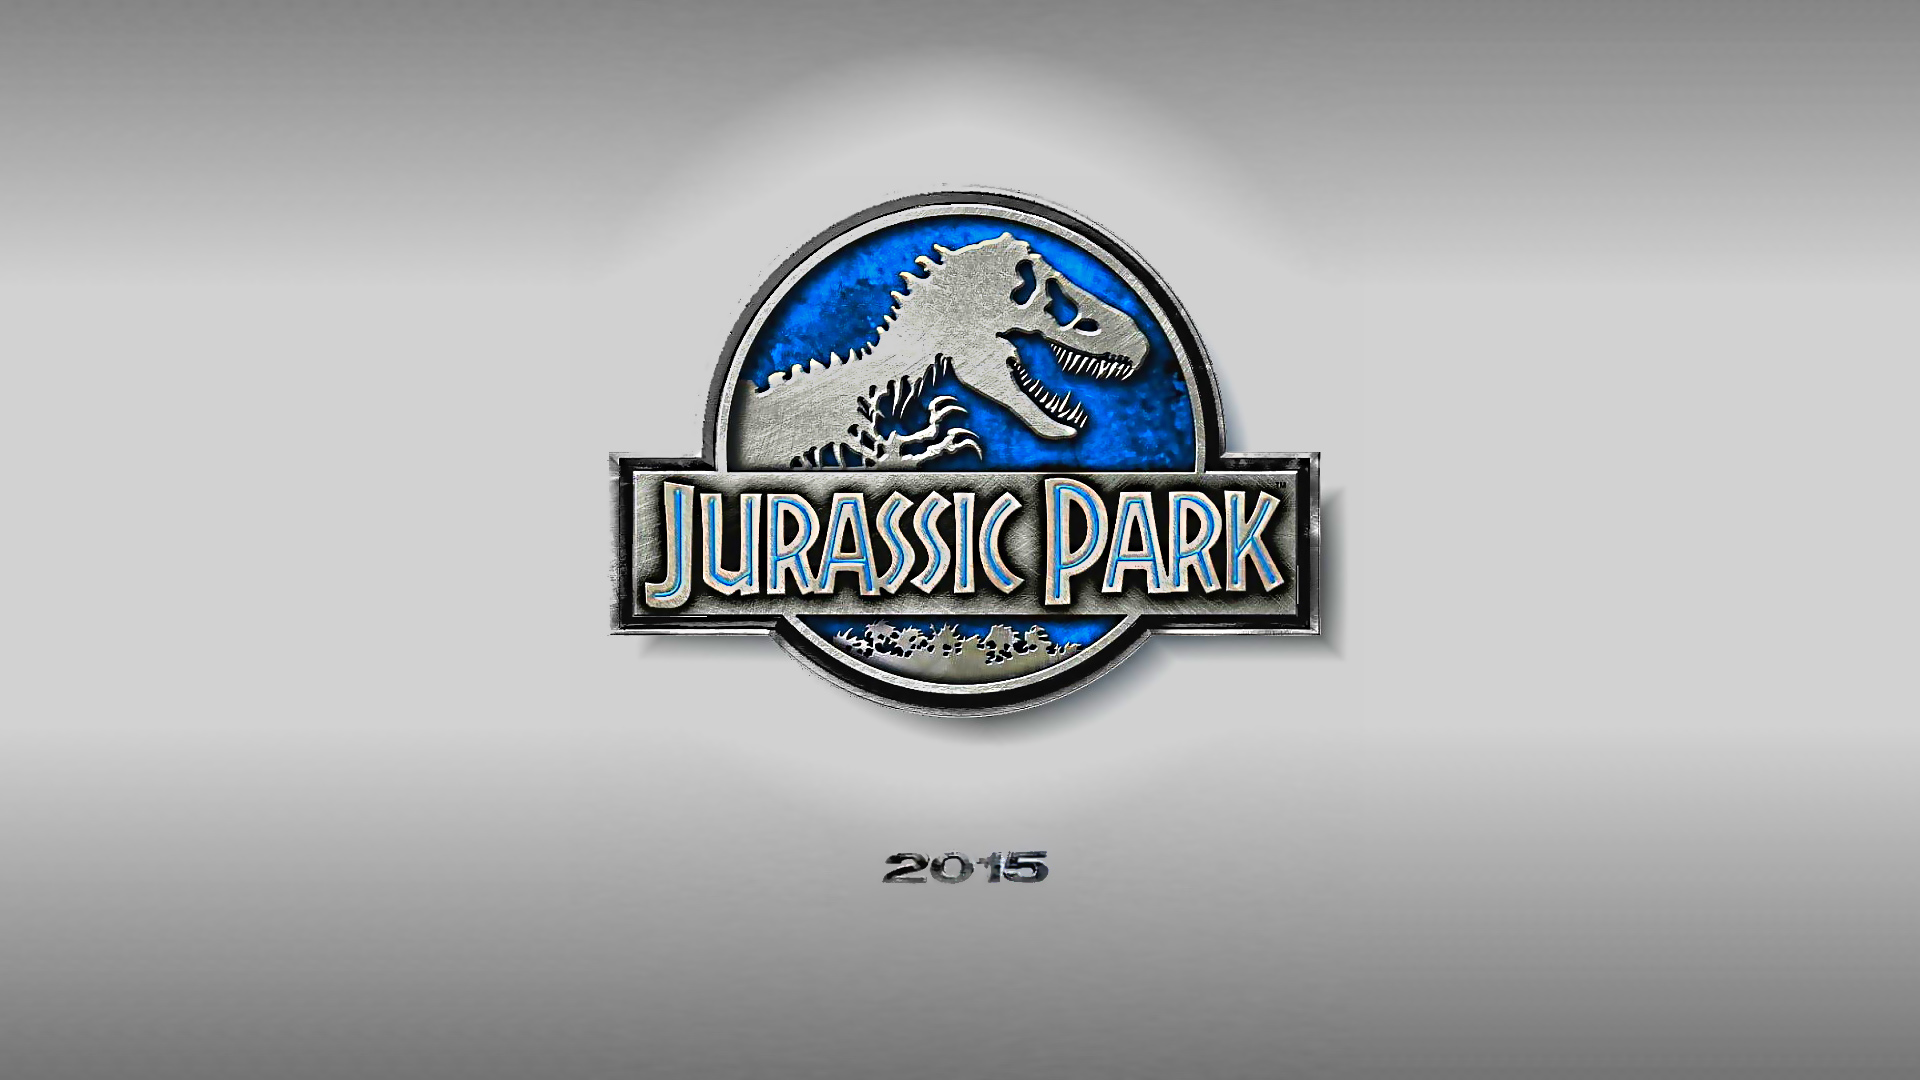 Jurassic Park 4 2015 Wallpapers HD Wallpapers 1920x1080